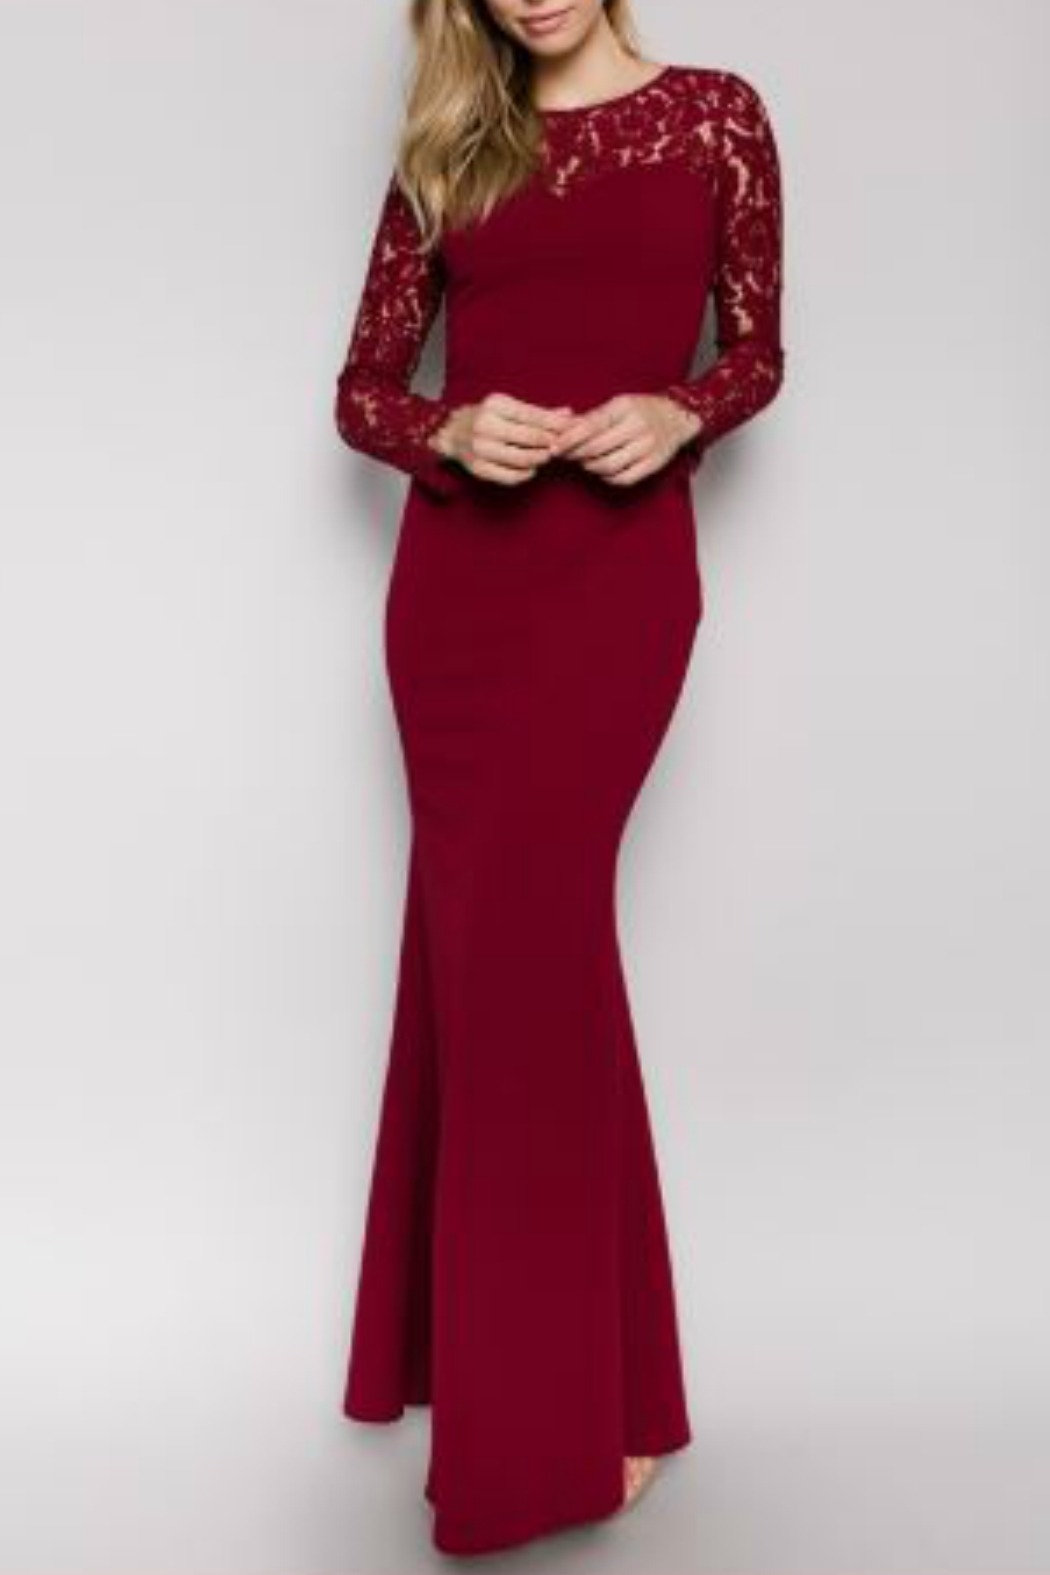 Minuet Burgundy Long Formal Dress with Lace Sleeve - Main Image